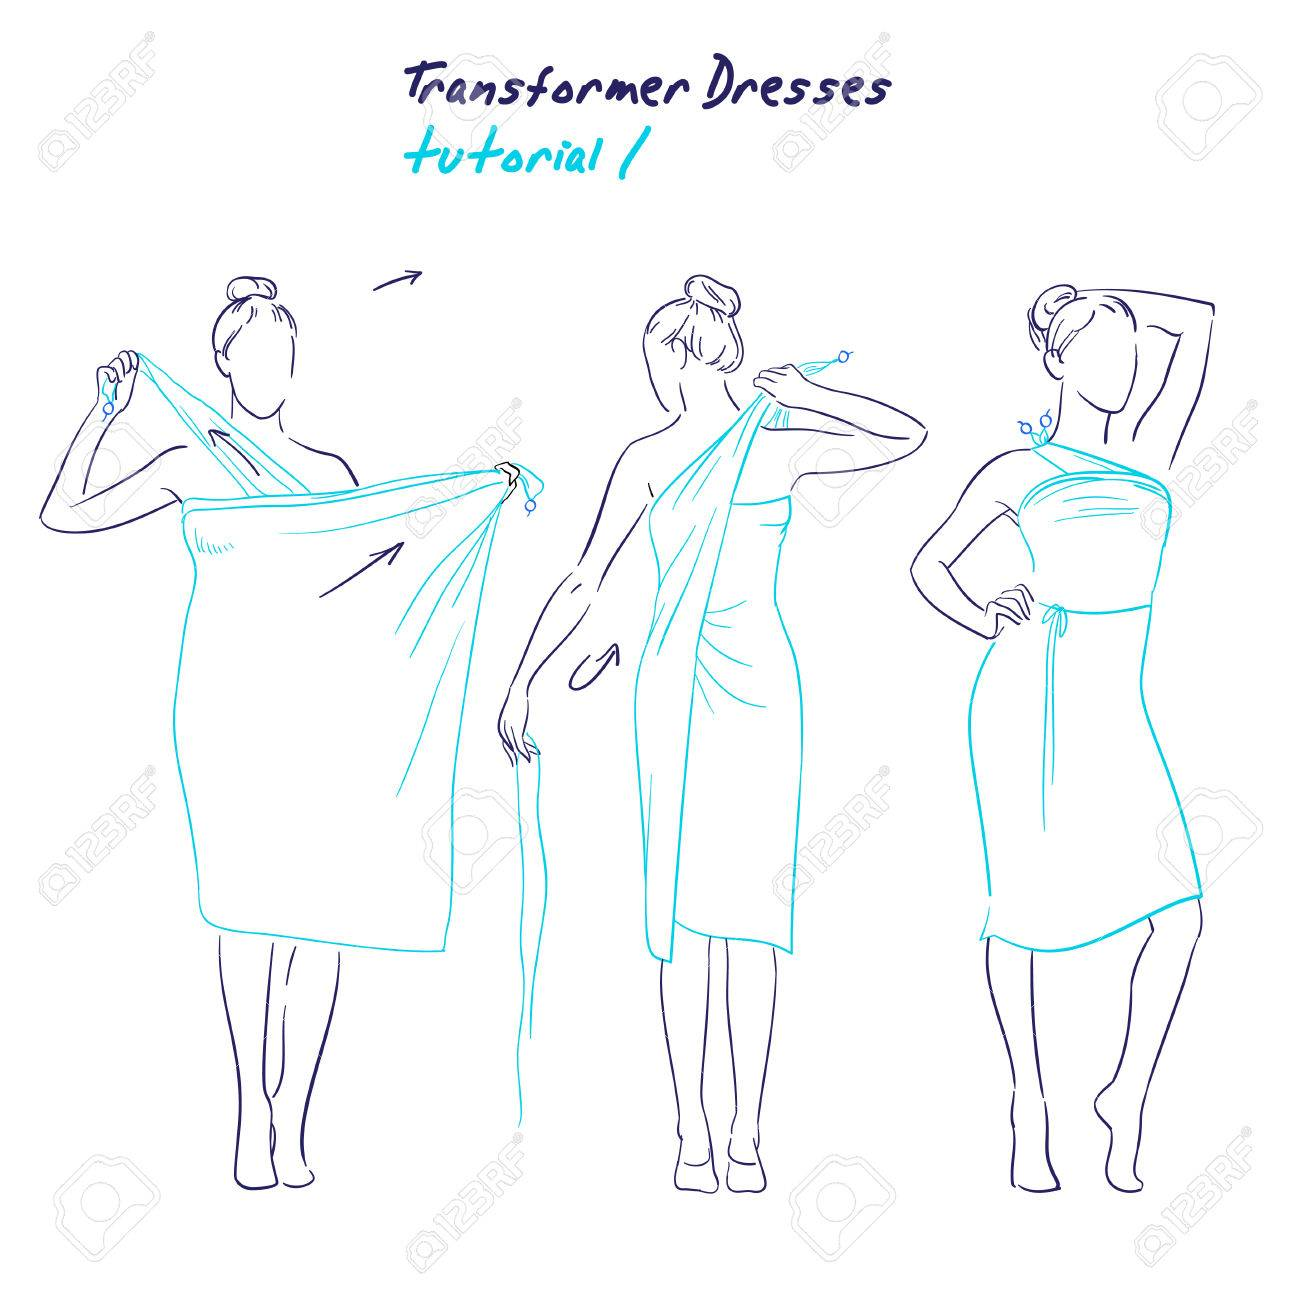 Transformer dresses women clothes and accessories, hand drawn